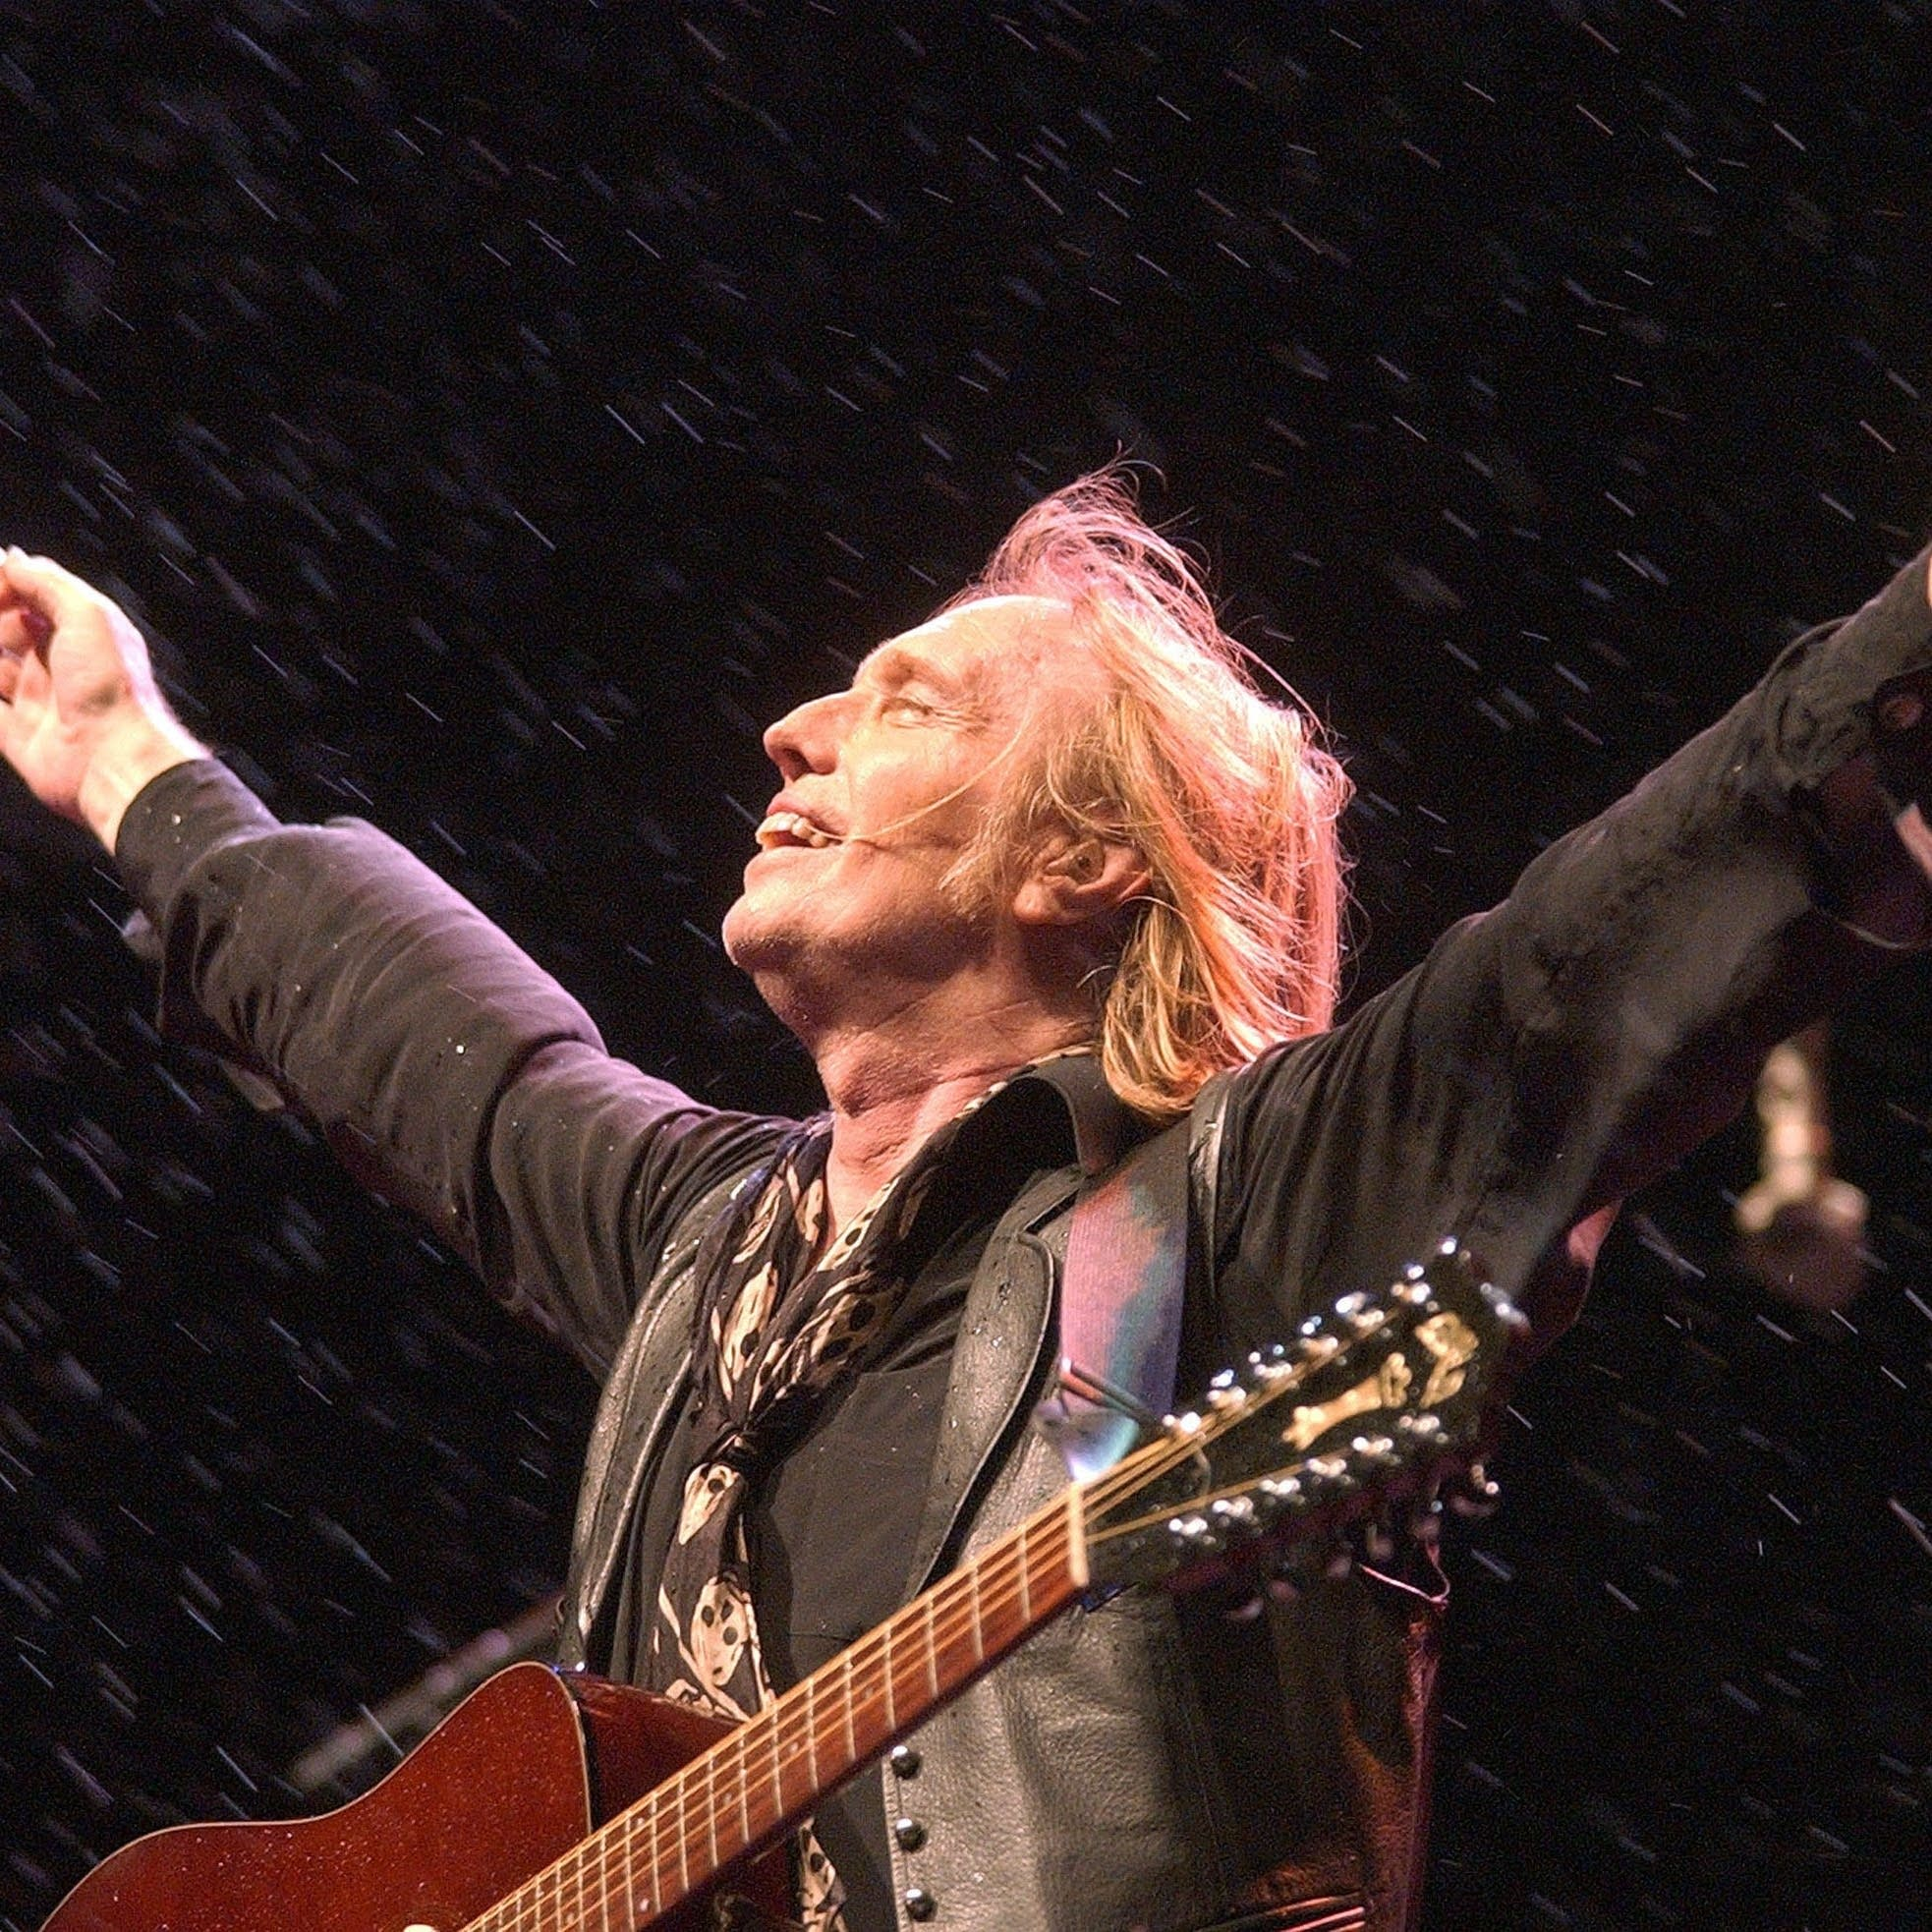 Tom Petty at the Austin City Limits Music Festival in 2006